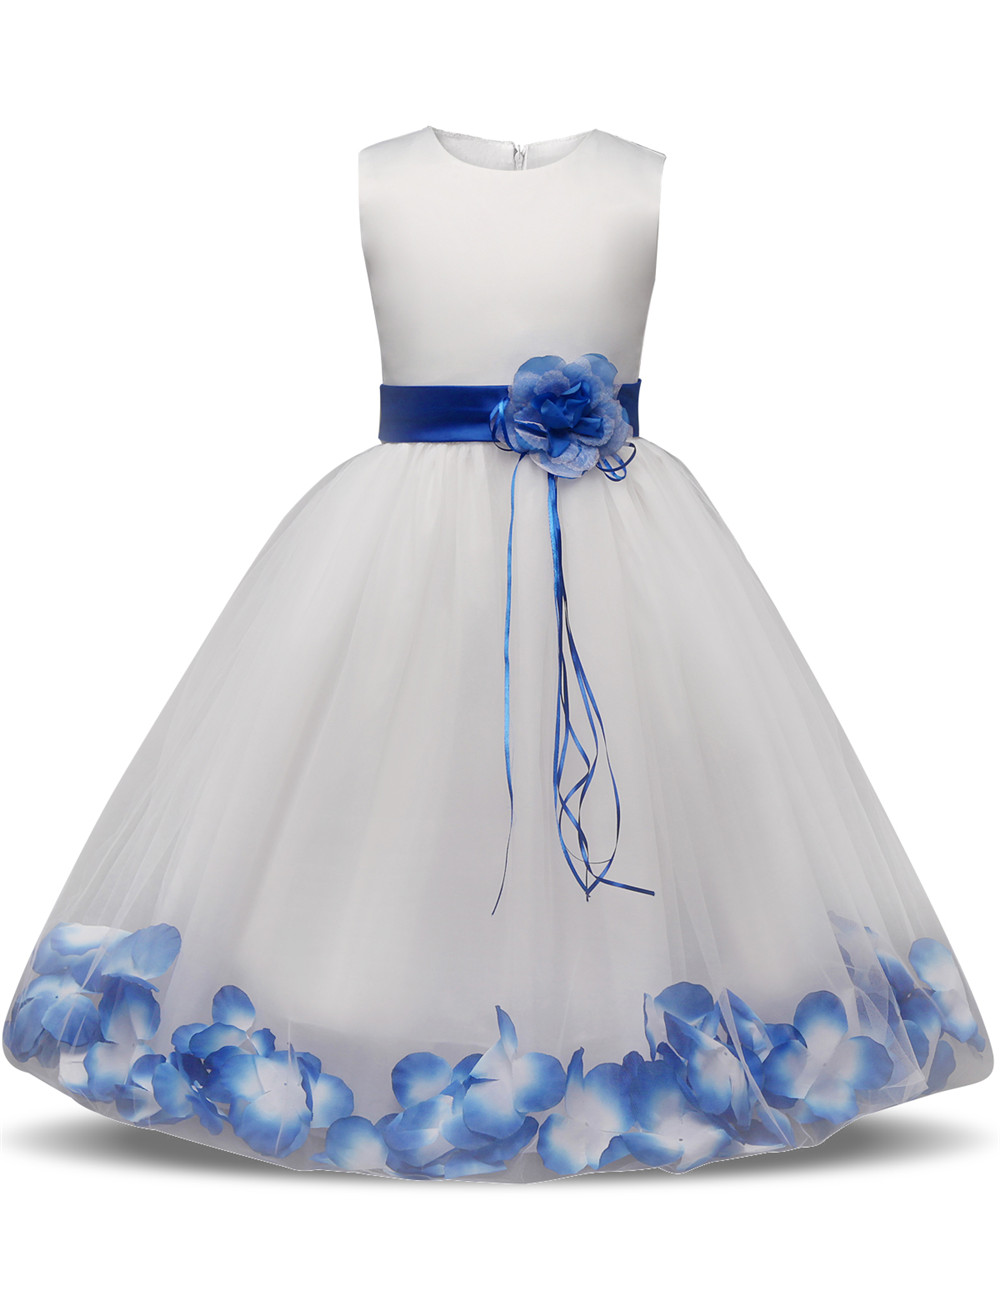 Fairy Petals Teen Girl Dress Children Ceremony Party Evening Dress Girls Prom Gowns Kids Tulle Tutu Dresses For Girls Frocks 10T in stock layered pre teen party gowns little girls pageant dress pink color